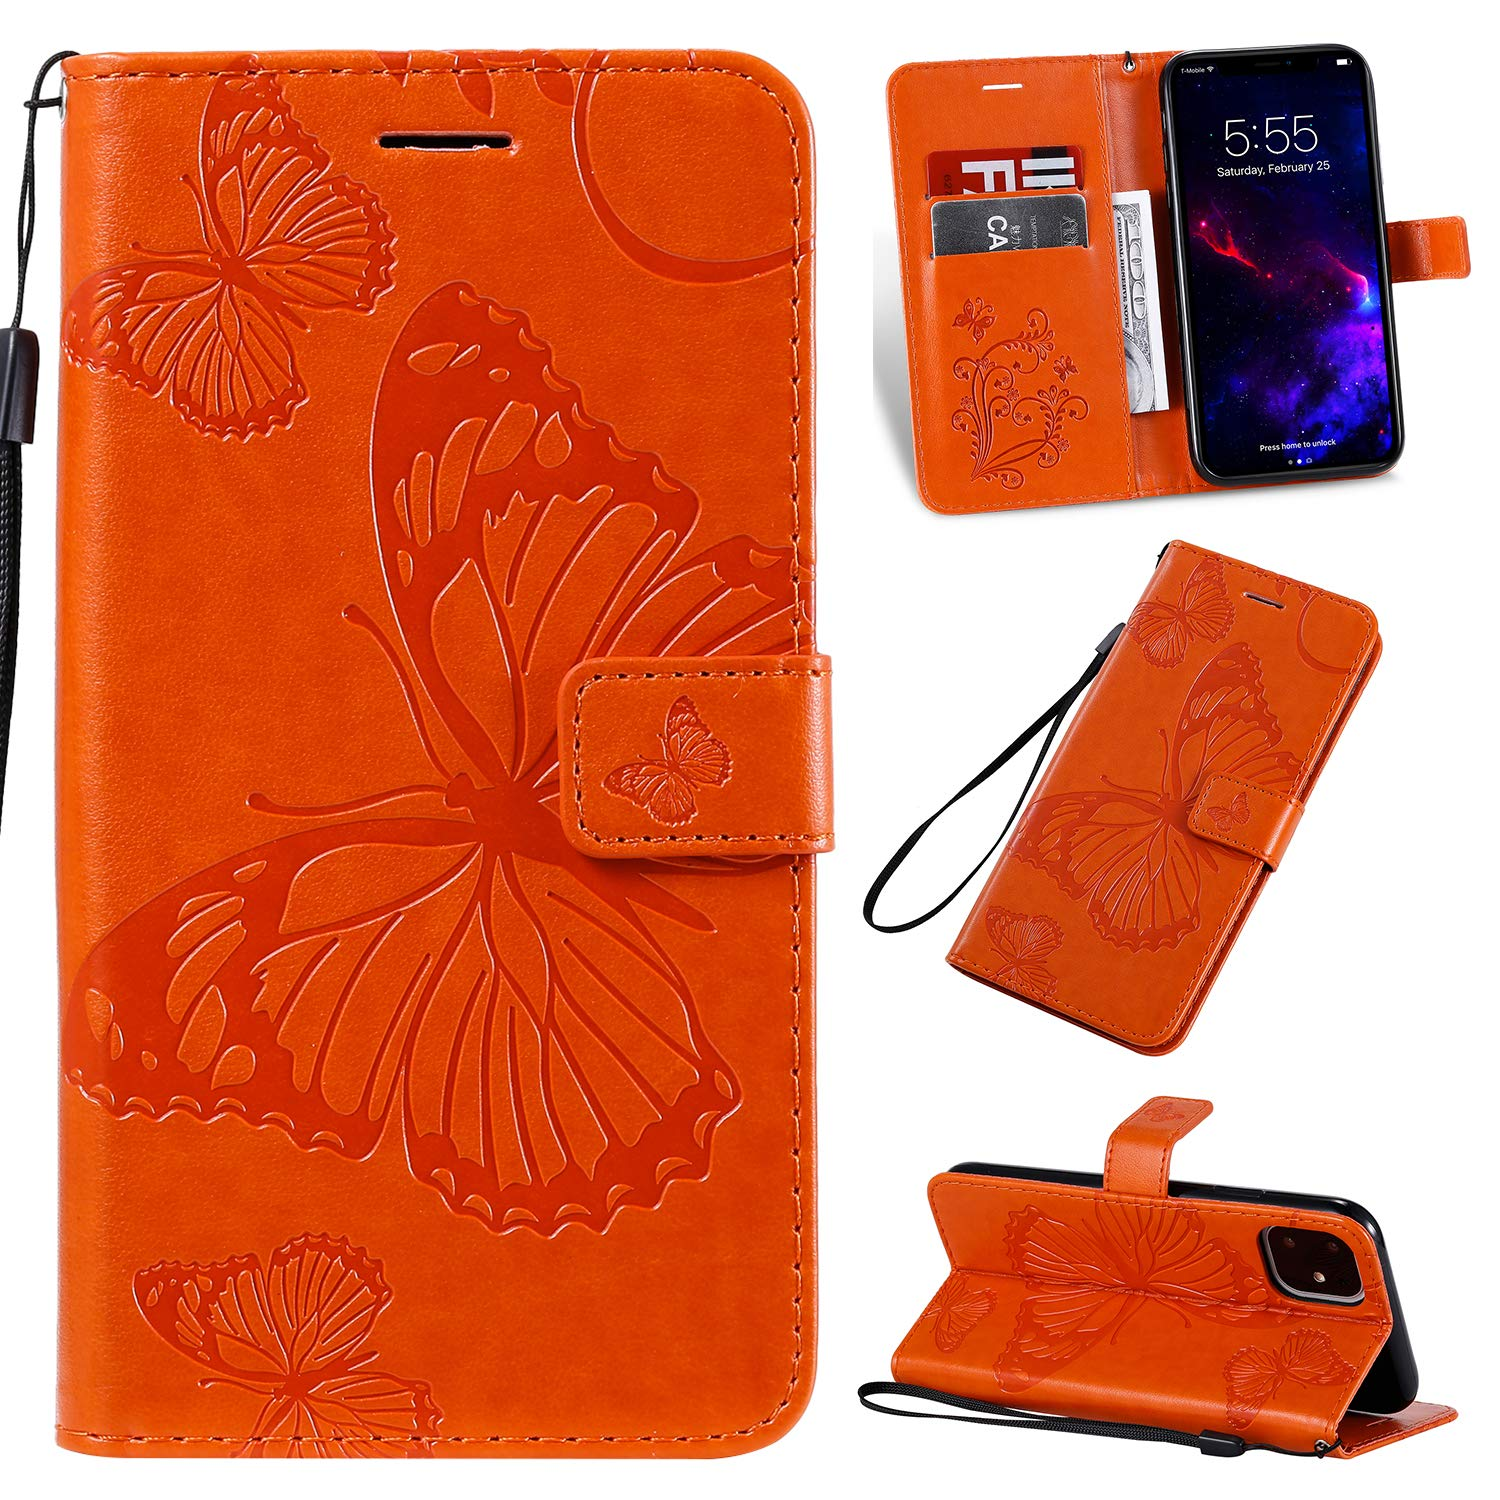 Tznzxm iPhone 11 6.1 inch Case,3D Embossed Butterfly PU Leather Magnetic Wallet Protective Flip Kickstand Cover with Credit Card Slots and Wrist Wallet for iPhone 6.1 inch 2019 Orange by Tznzxm